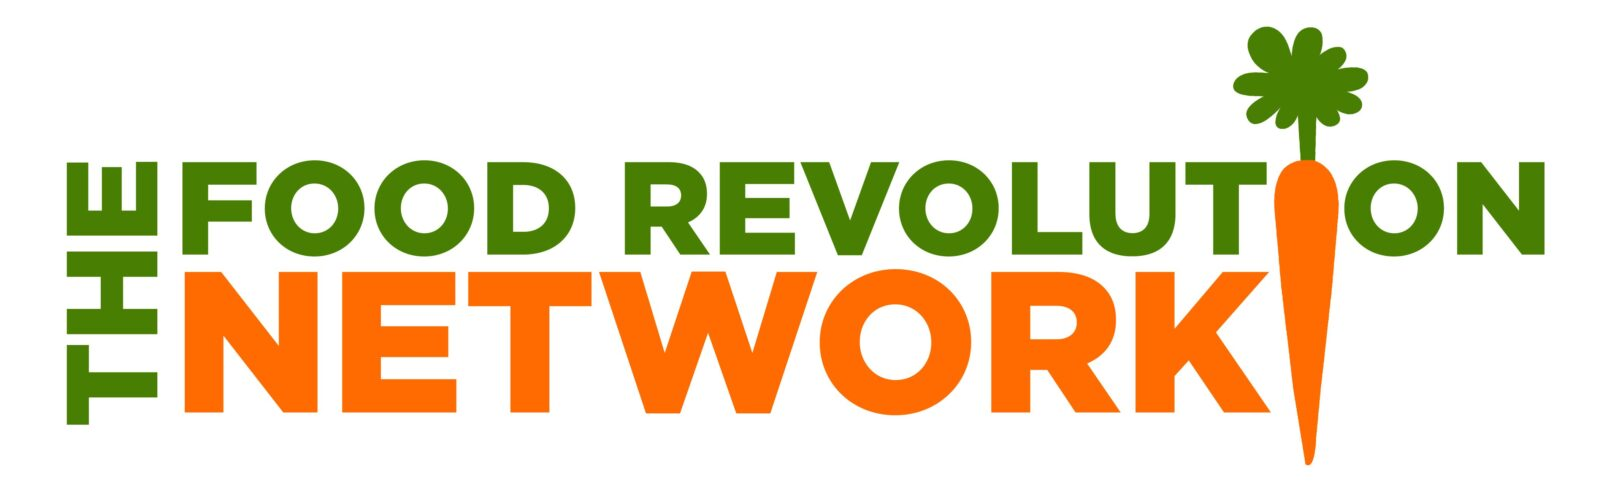 WFPB.ORG Alliance | Food Revolution Network